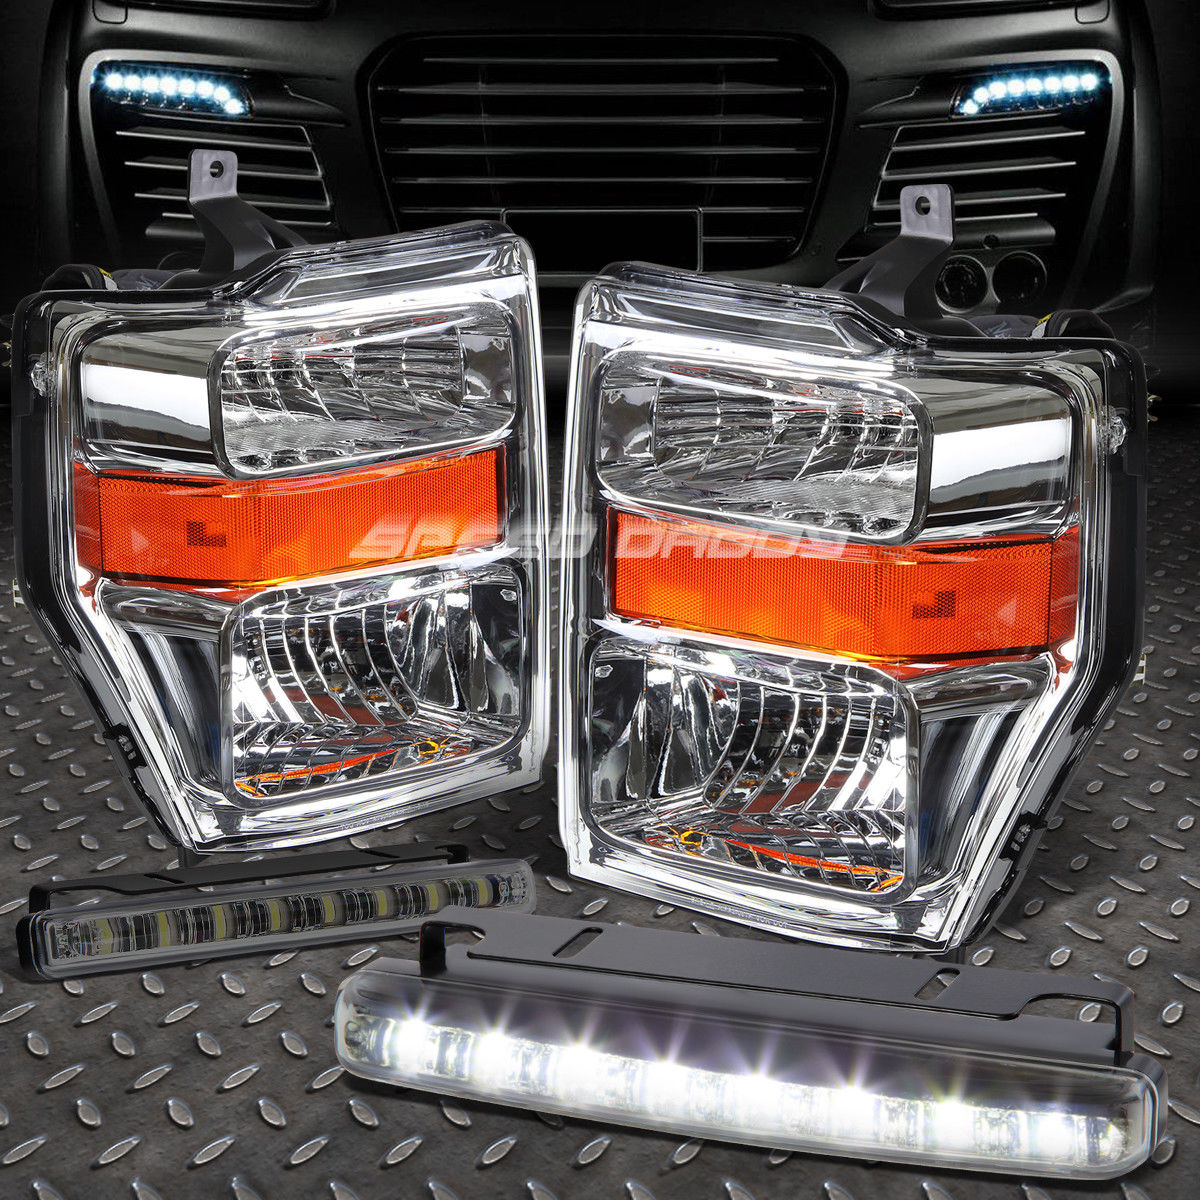 フォグライト CHROME LENS HEADLIGHT AMBER CORNER+8 LED SMOKE FOG LIGHT FOR 08-10 SUPERDUTY CHROMEレンズヘッドライトアンバーコーナー+ 8個のLED SMOKE FOGライト08-10 SUPERDUTY